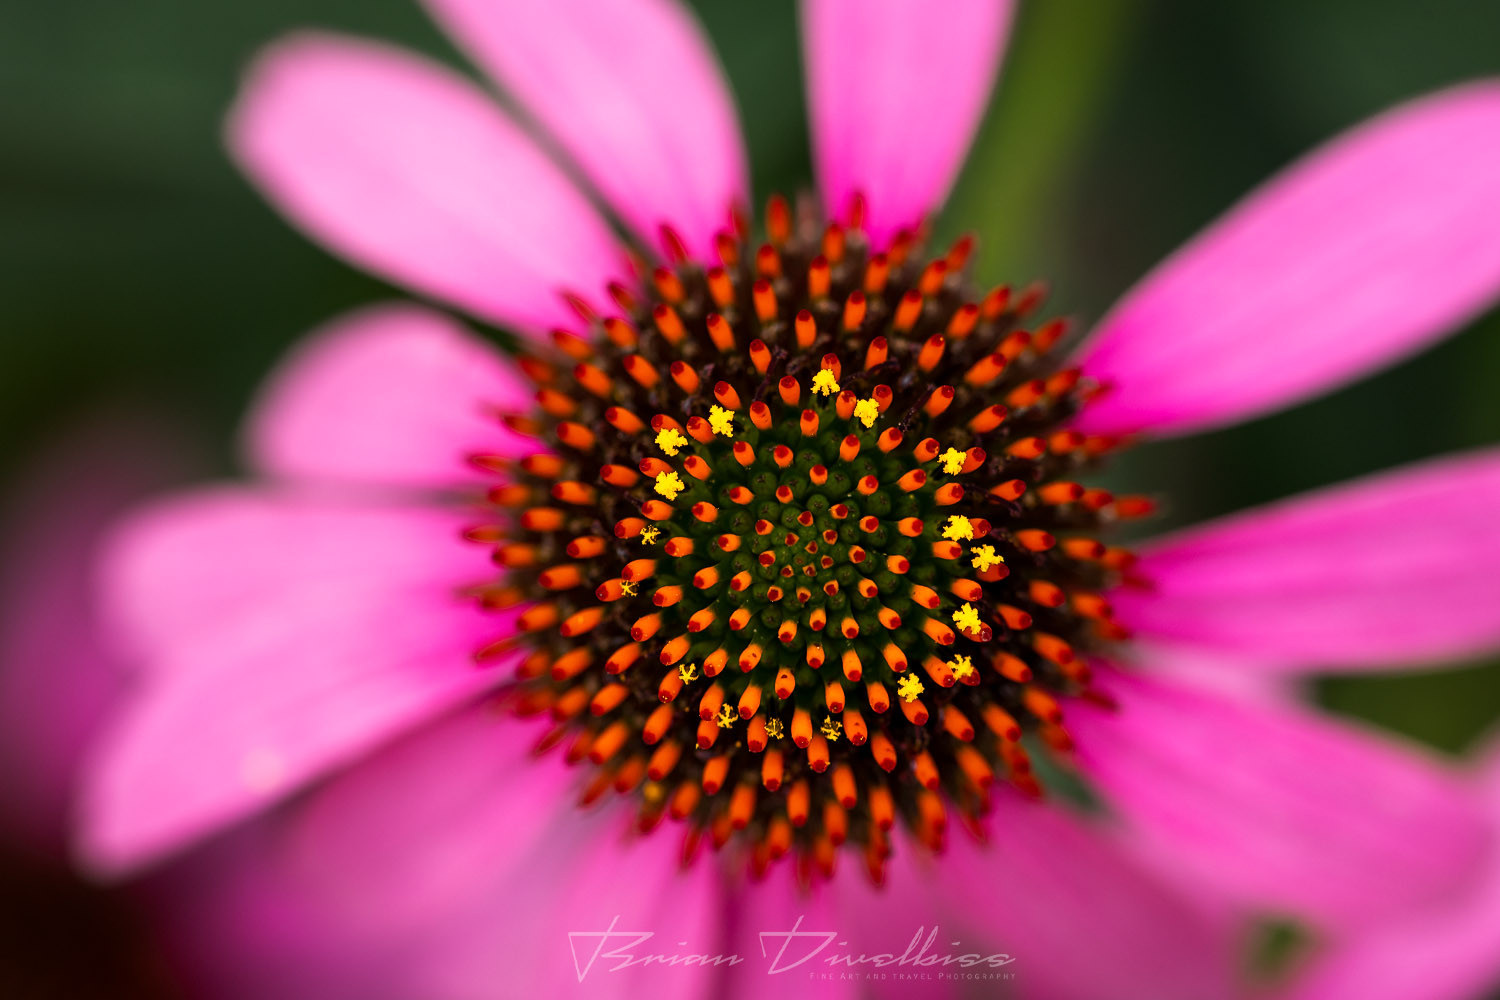 Close-up of pink flower with central pistils in focus at Powell Gardens in Missouri.